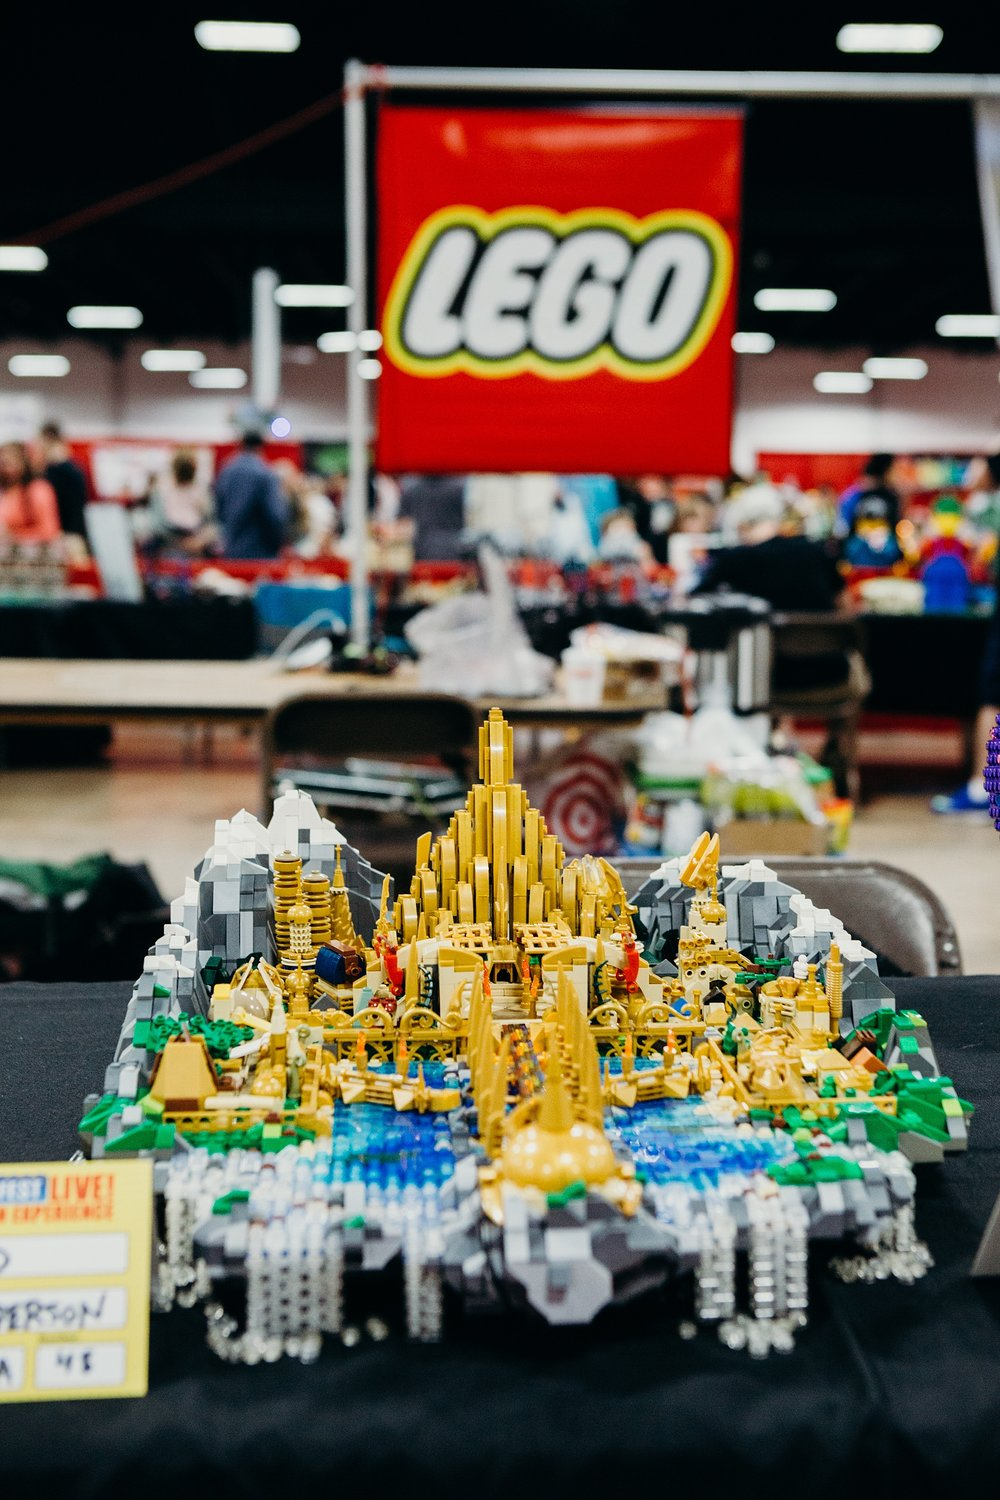 Joe_mac_Creative_Photography_Lego_Convention_Expo_Philadelphia__0030.jpg